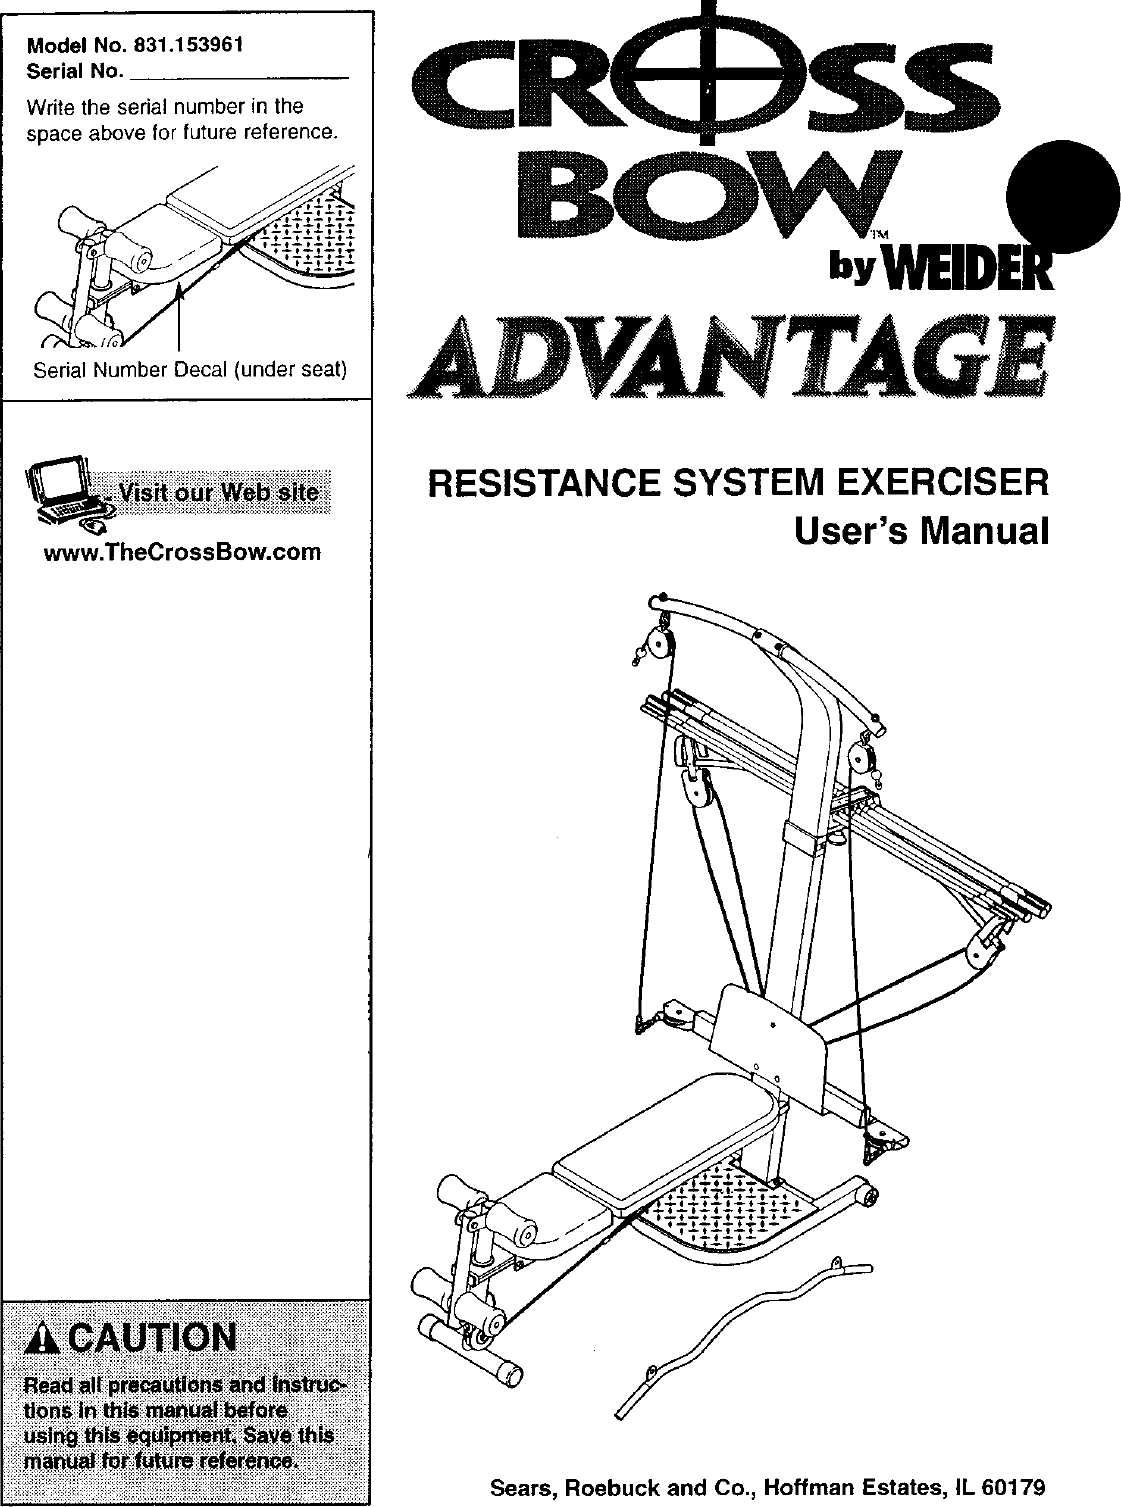 Weider 831153960 user manual crossbow advantage manuals and guides.